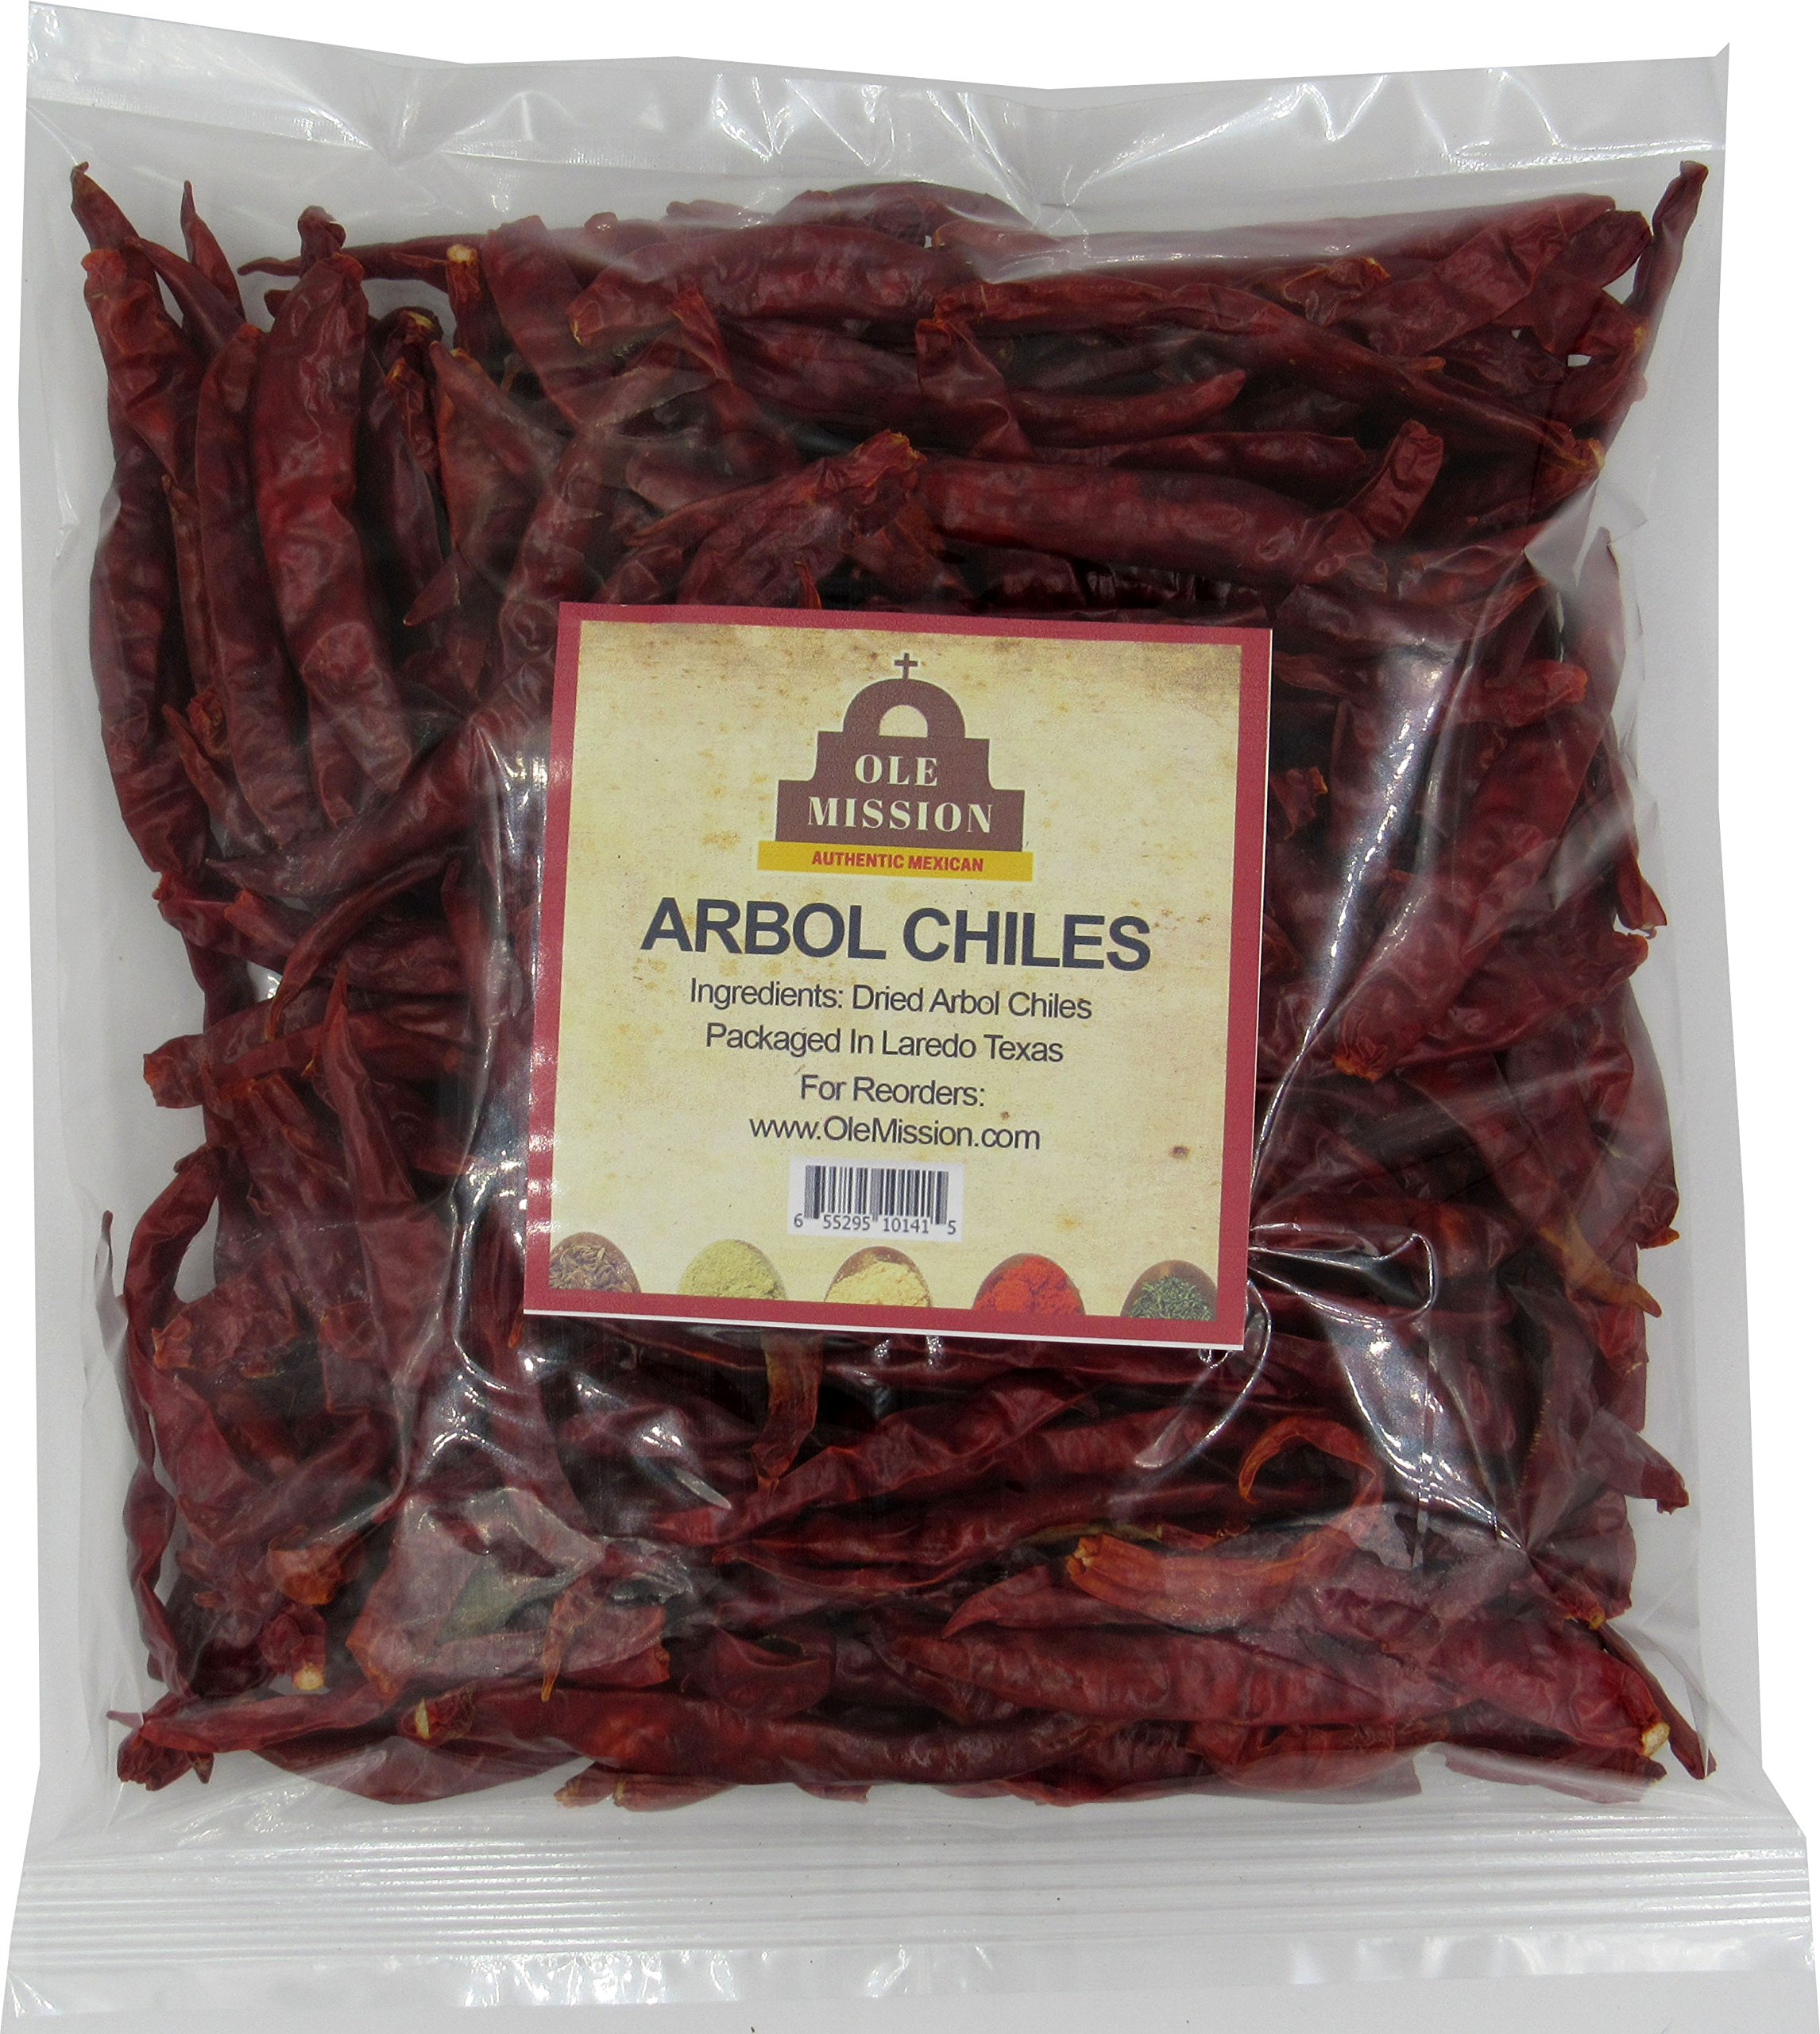 Arbol Chiles Bulk 1 lb - Chilis De Arbol Spicy Heat Natural Whole Dried Peppers For Mexican Recipes